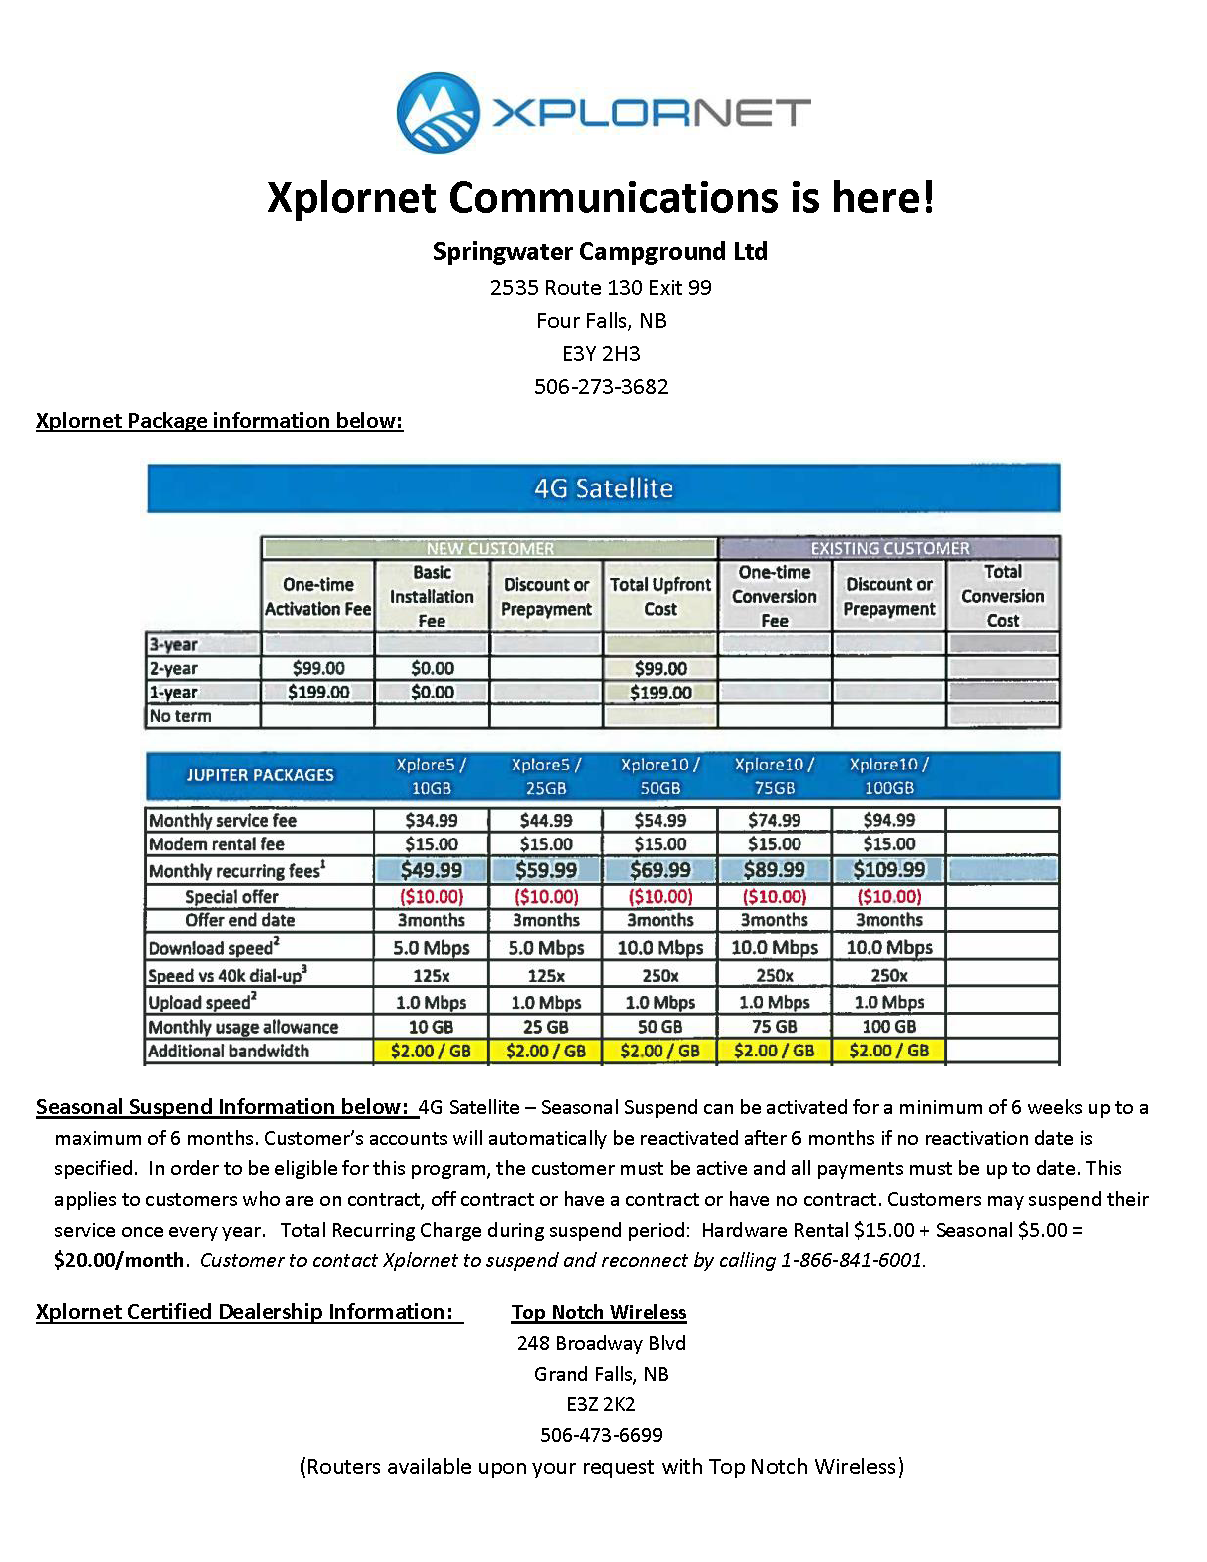 Springwater Campground Ltd - Xplornet (2)